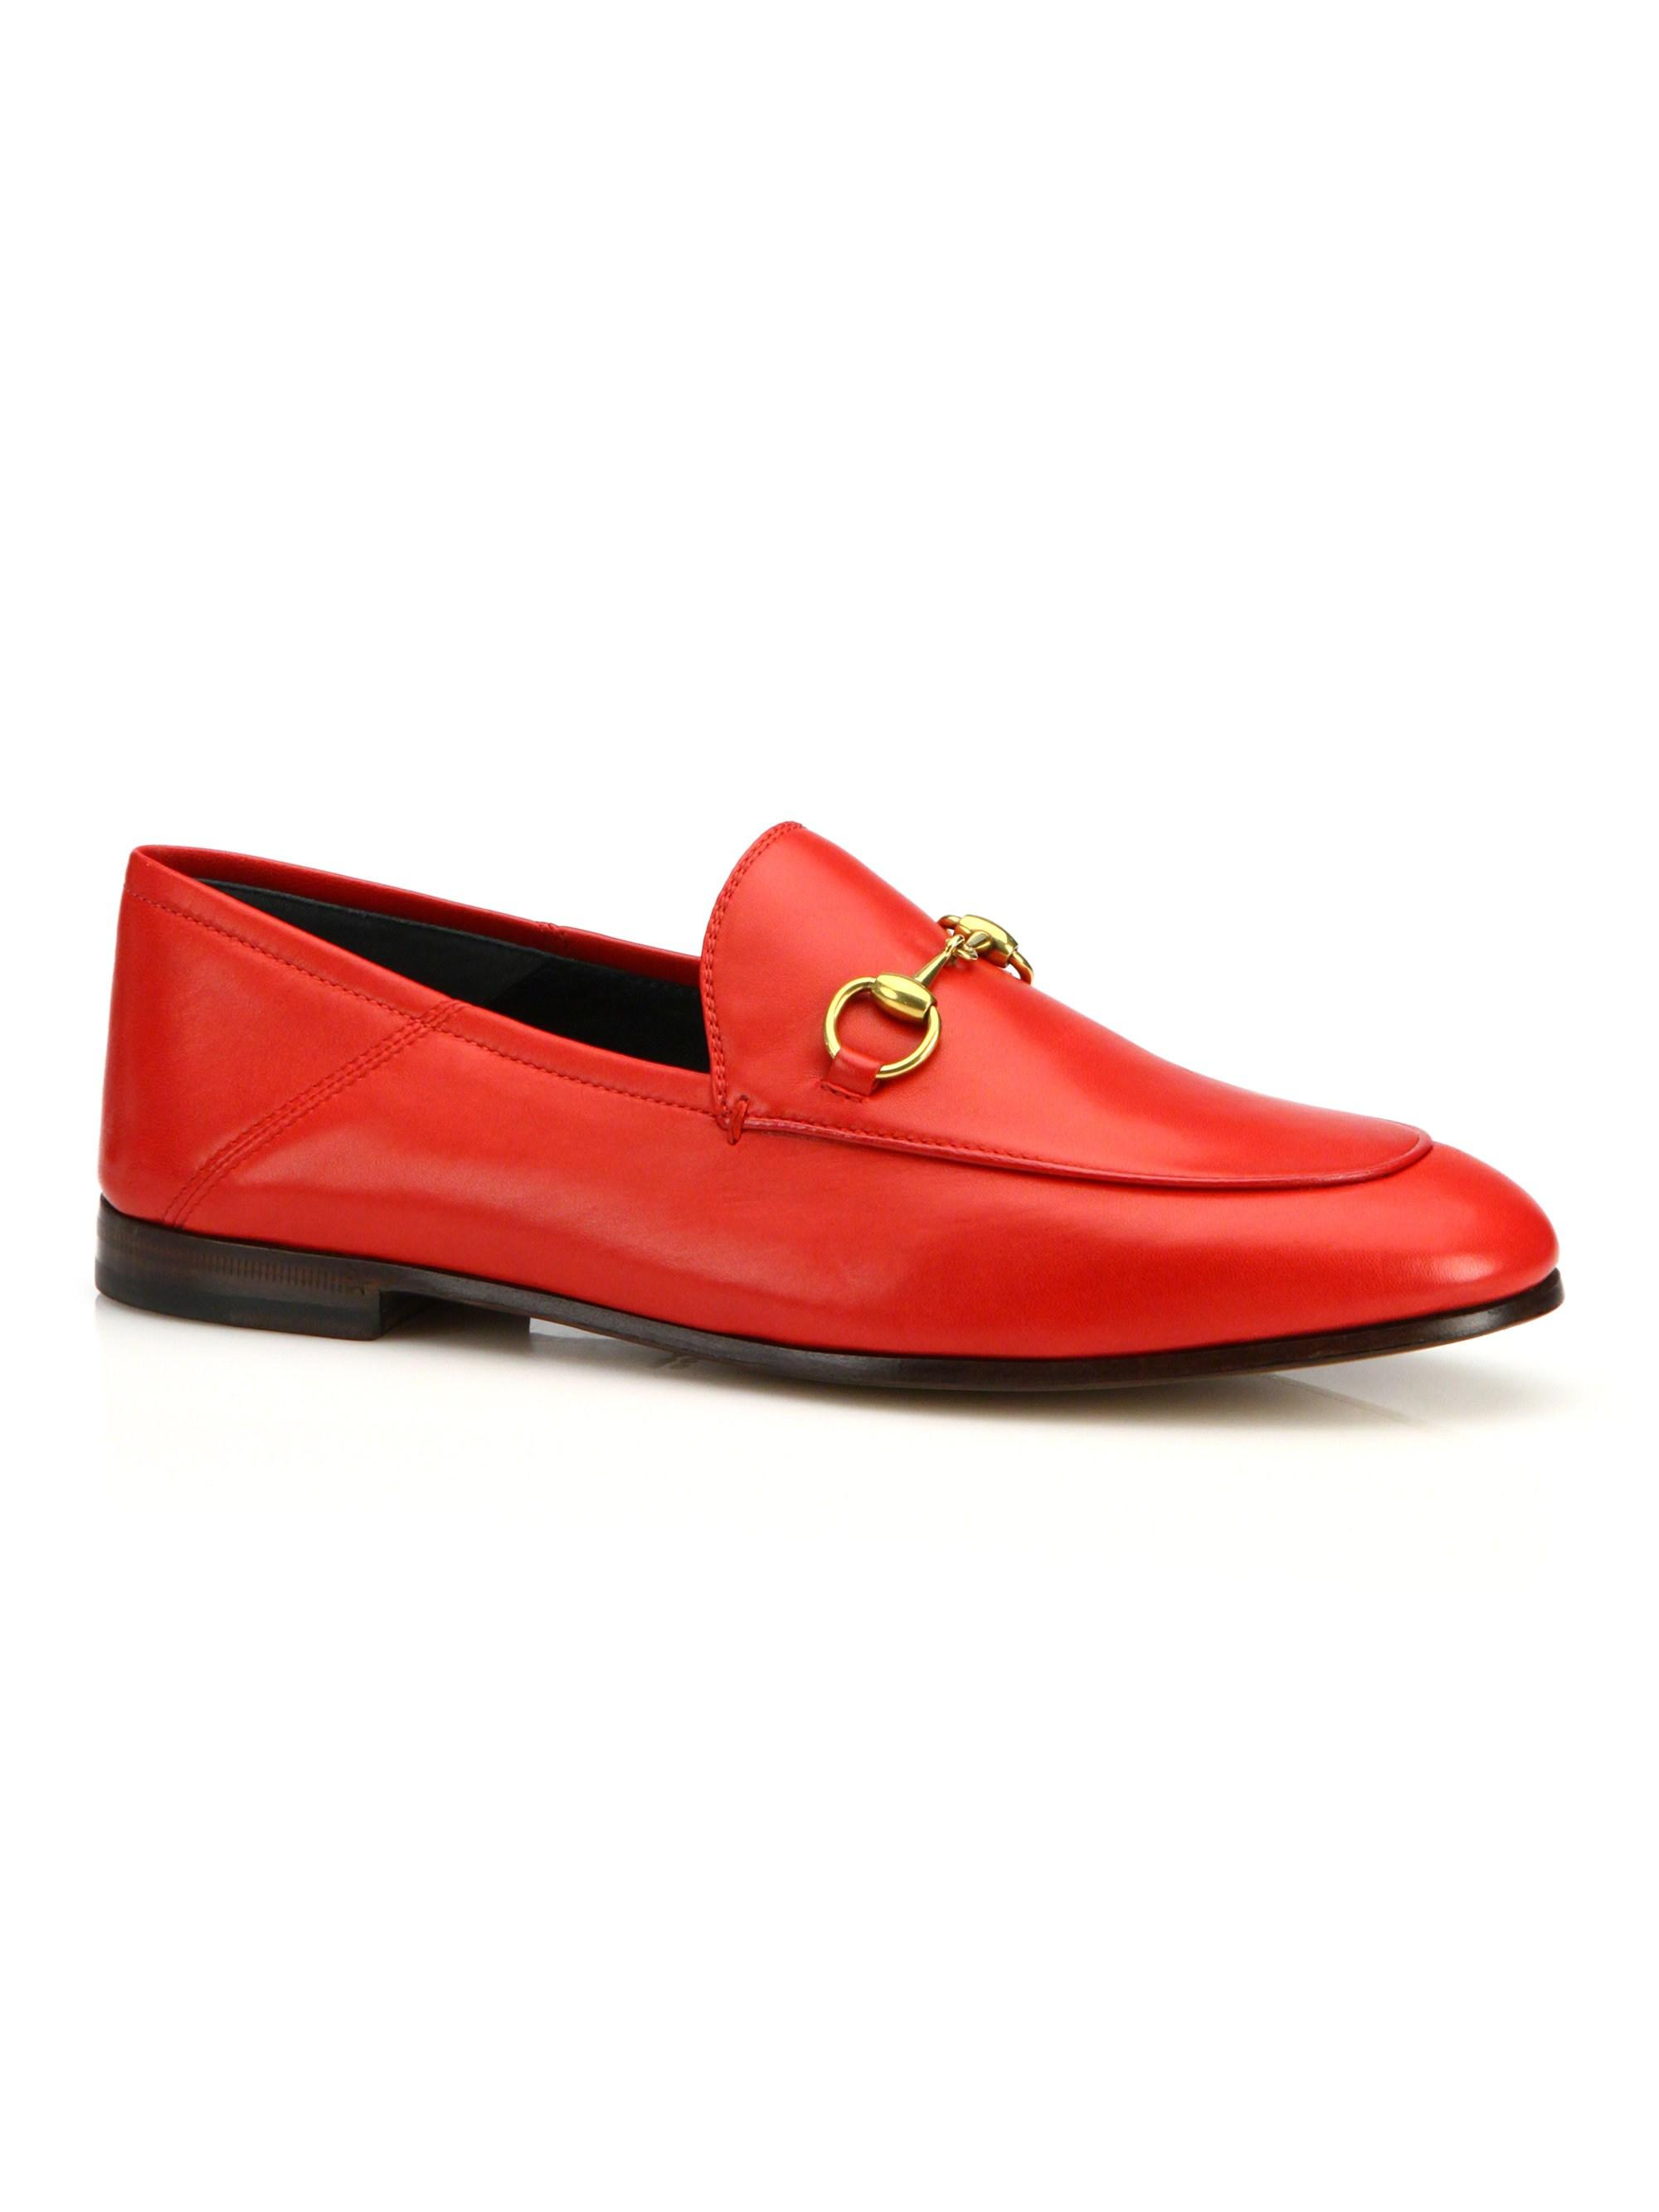 8b26baf9b5d Lyst - Gucci Brixton Leather Loafers in Red